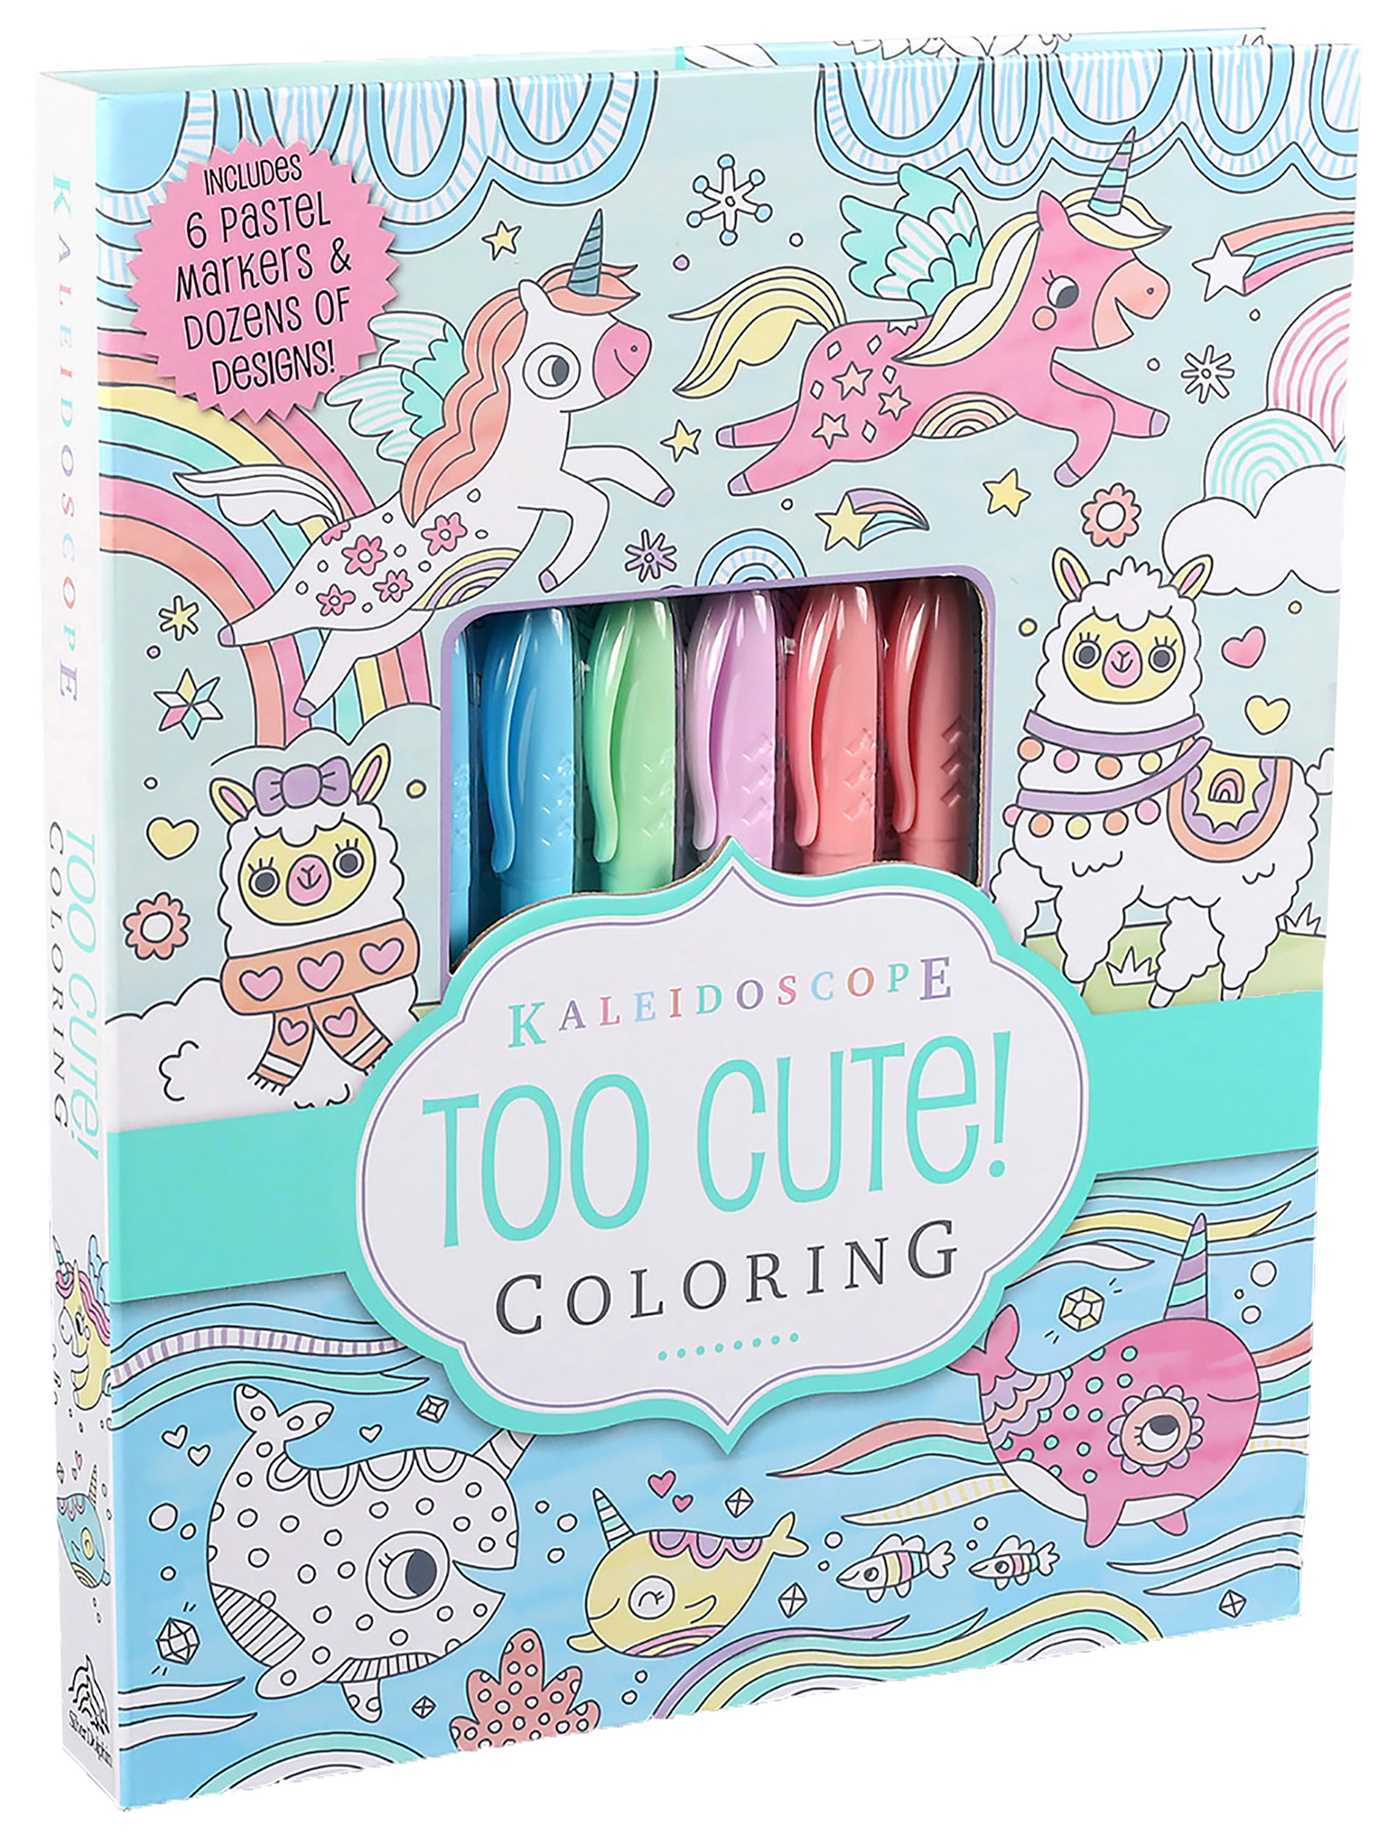 - Kaleidoscope: Too Cute! Coloring - Book Summary & Video Official